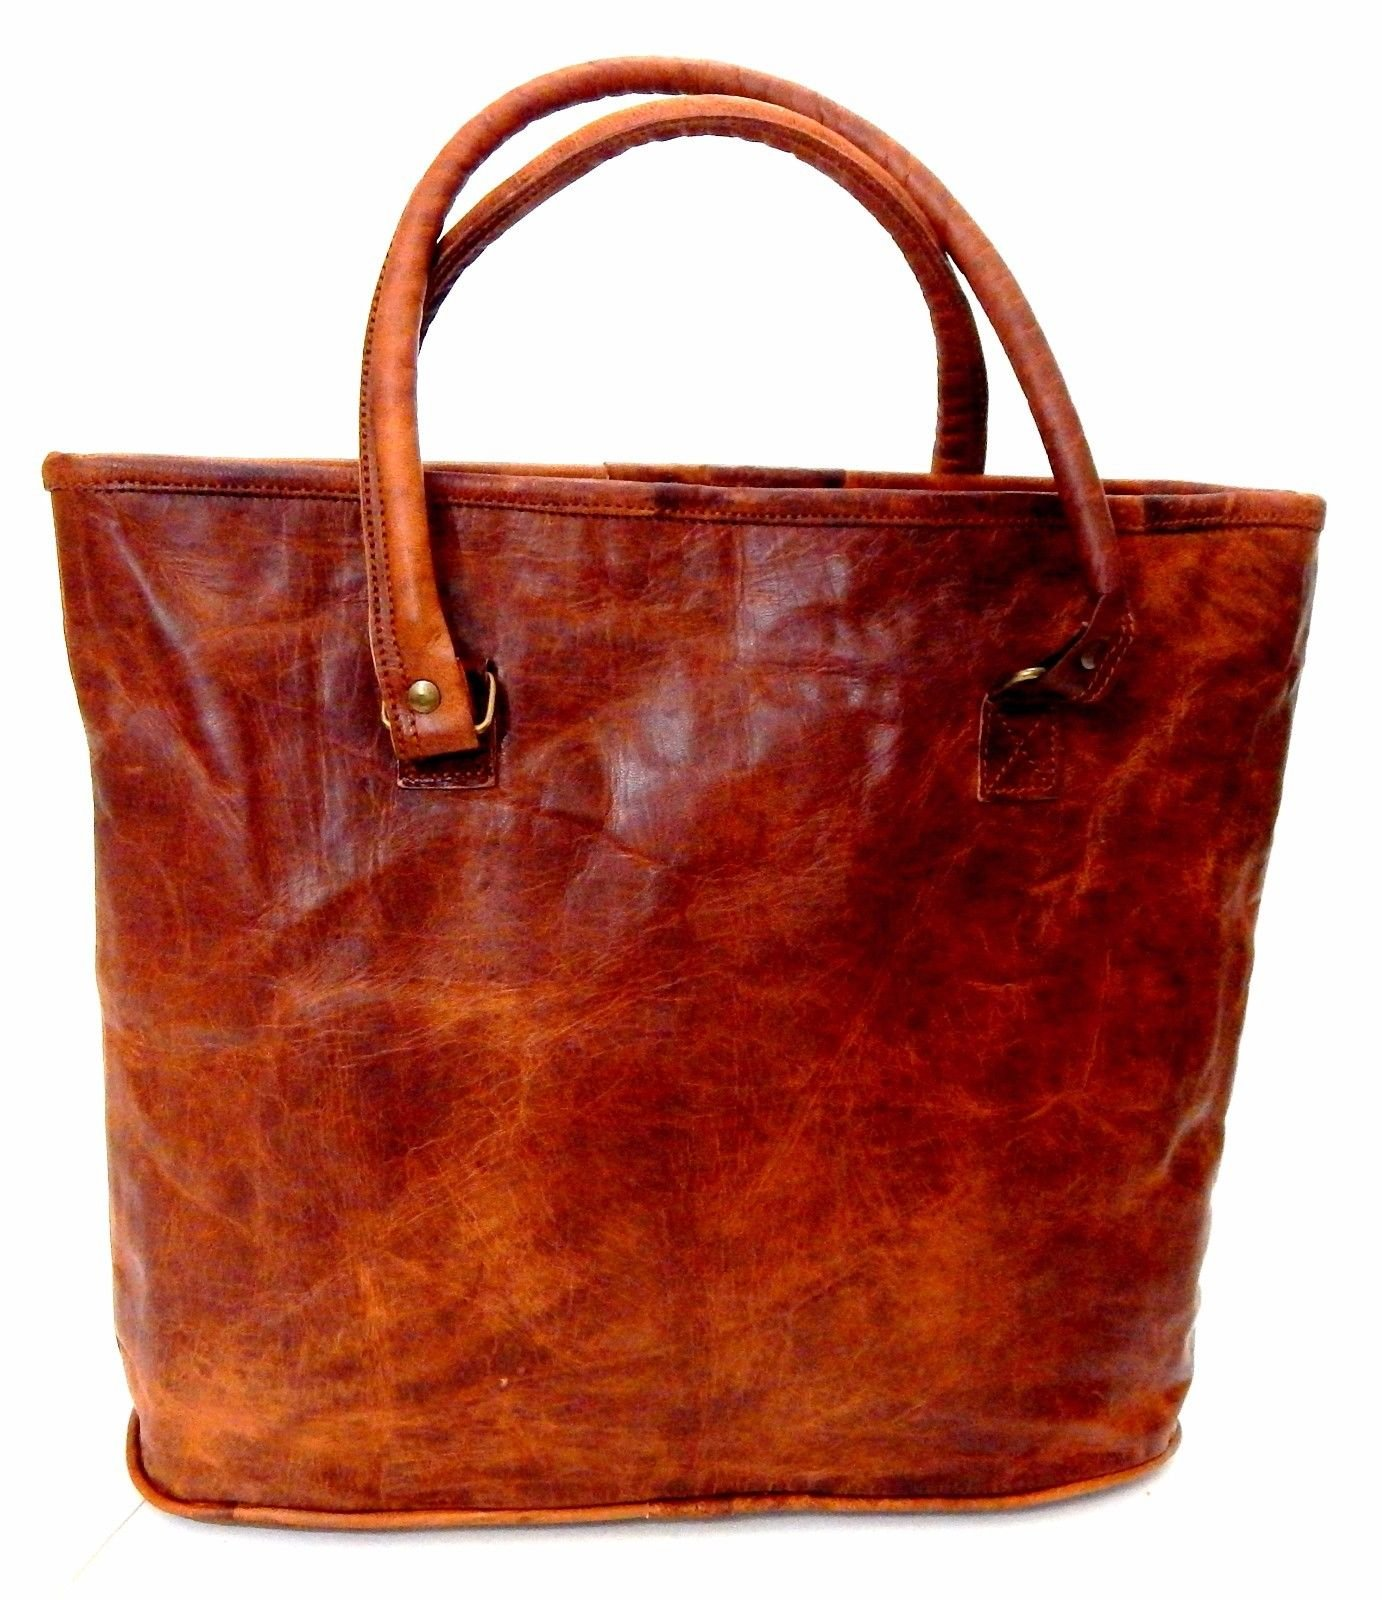 Firu-Handmade 16'' Women Vintage Rustic Retro Style Genuine Brown Leather Tote Shoppers Shoulder Bag Handmade Purse